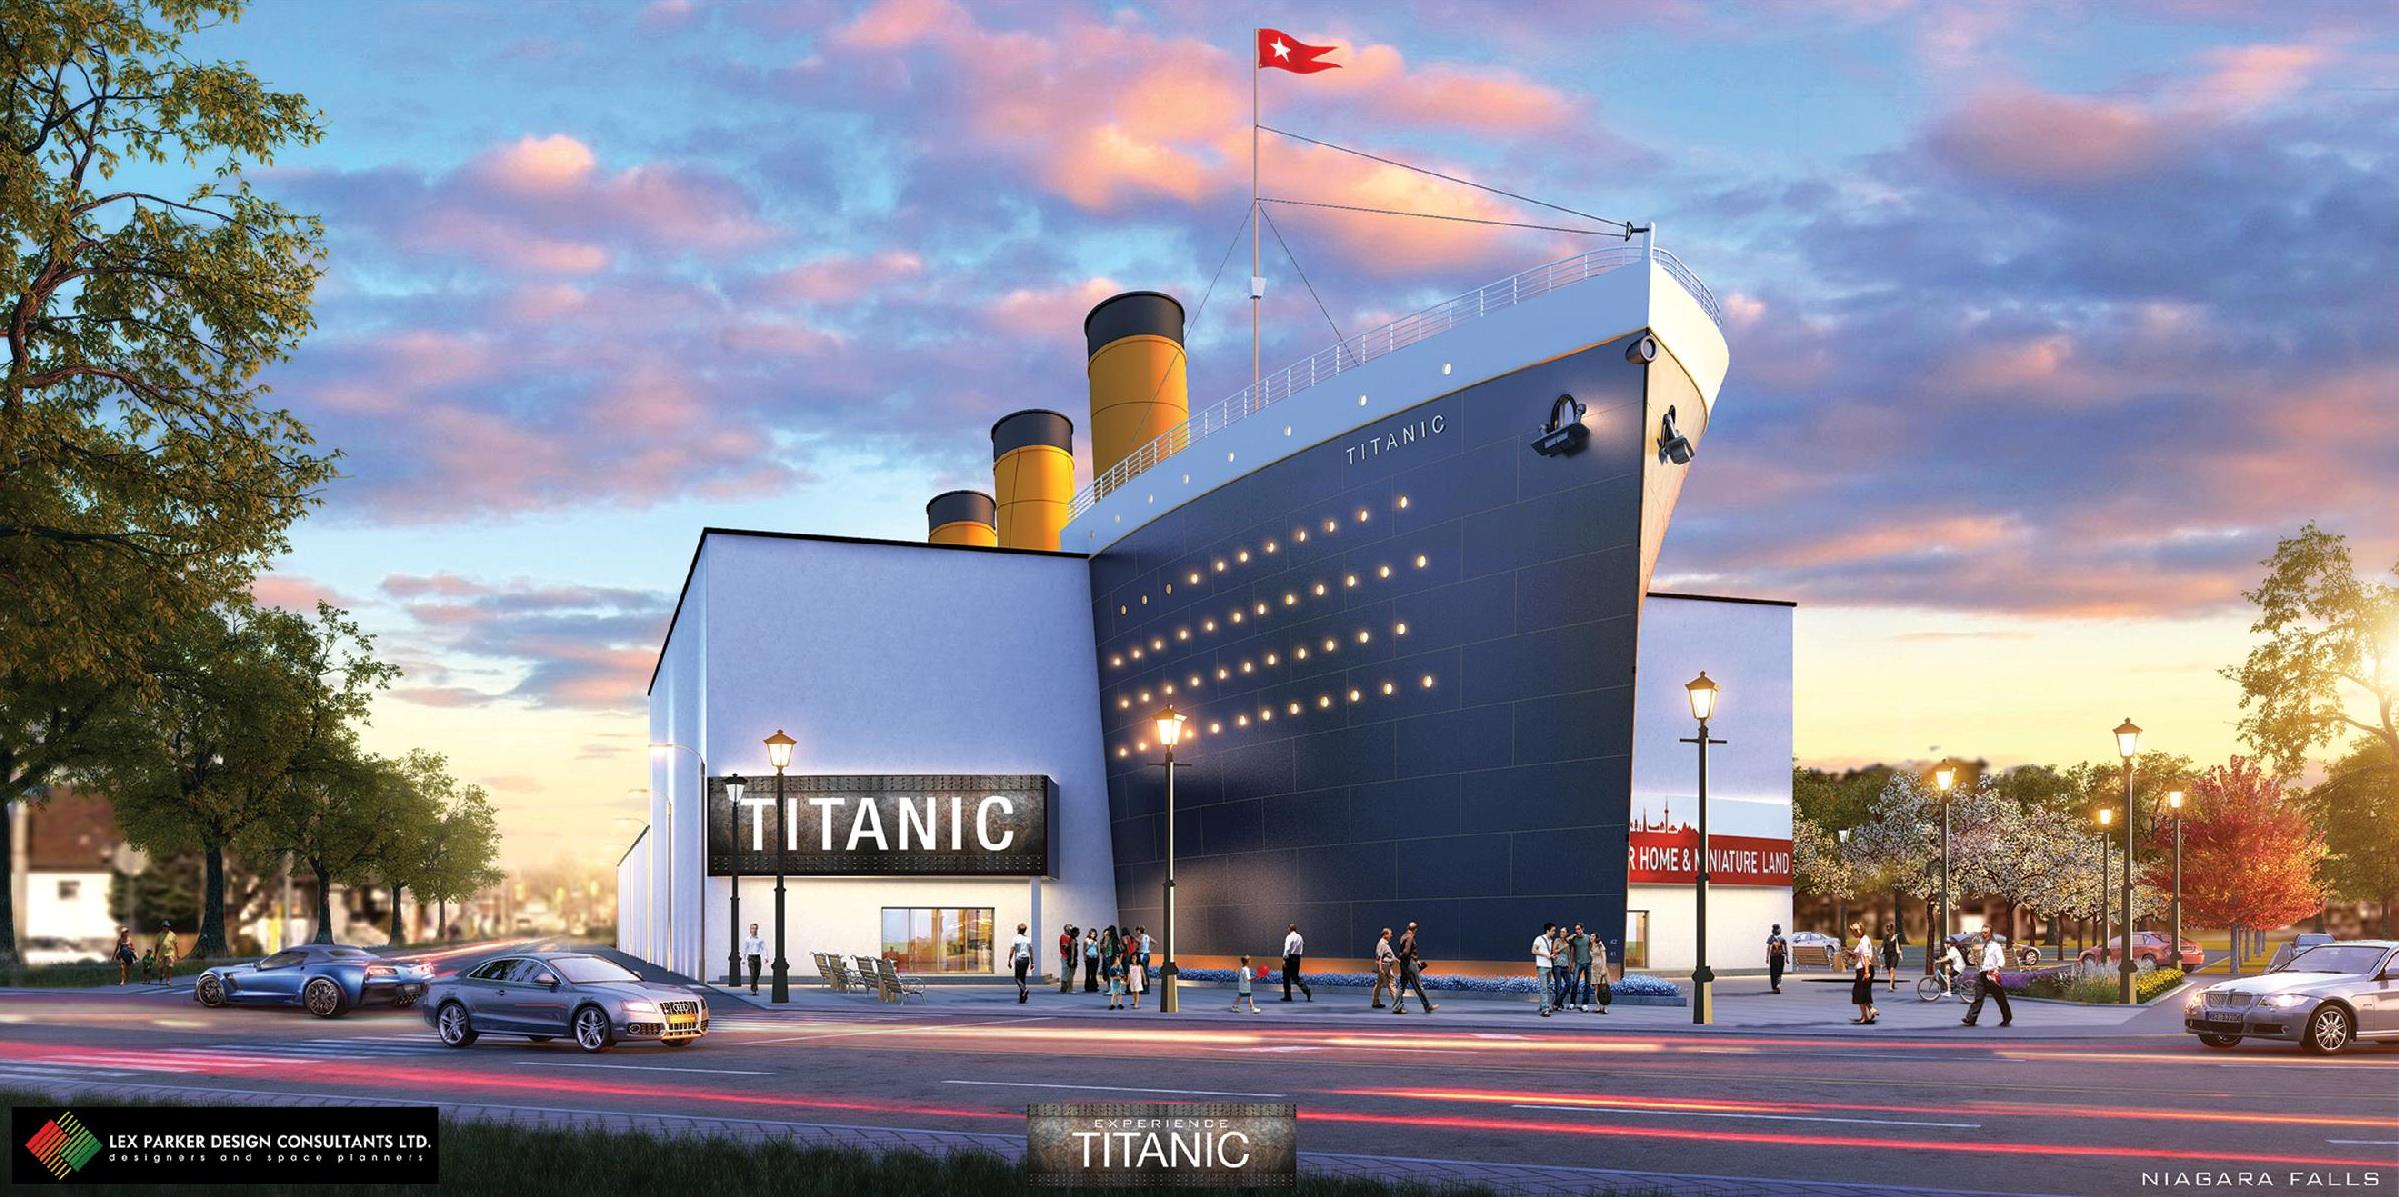 A rendering of the proposed Titanic-themed museum in Niagara Falls, Ont. (Courtesy of Lex Parker Design Consultants Ltd.)